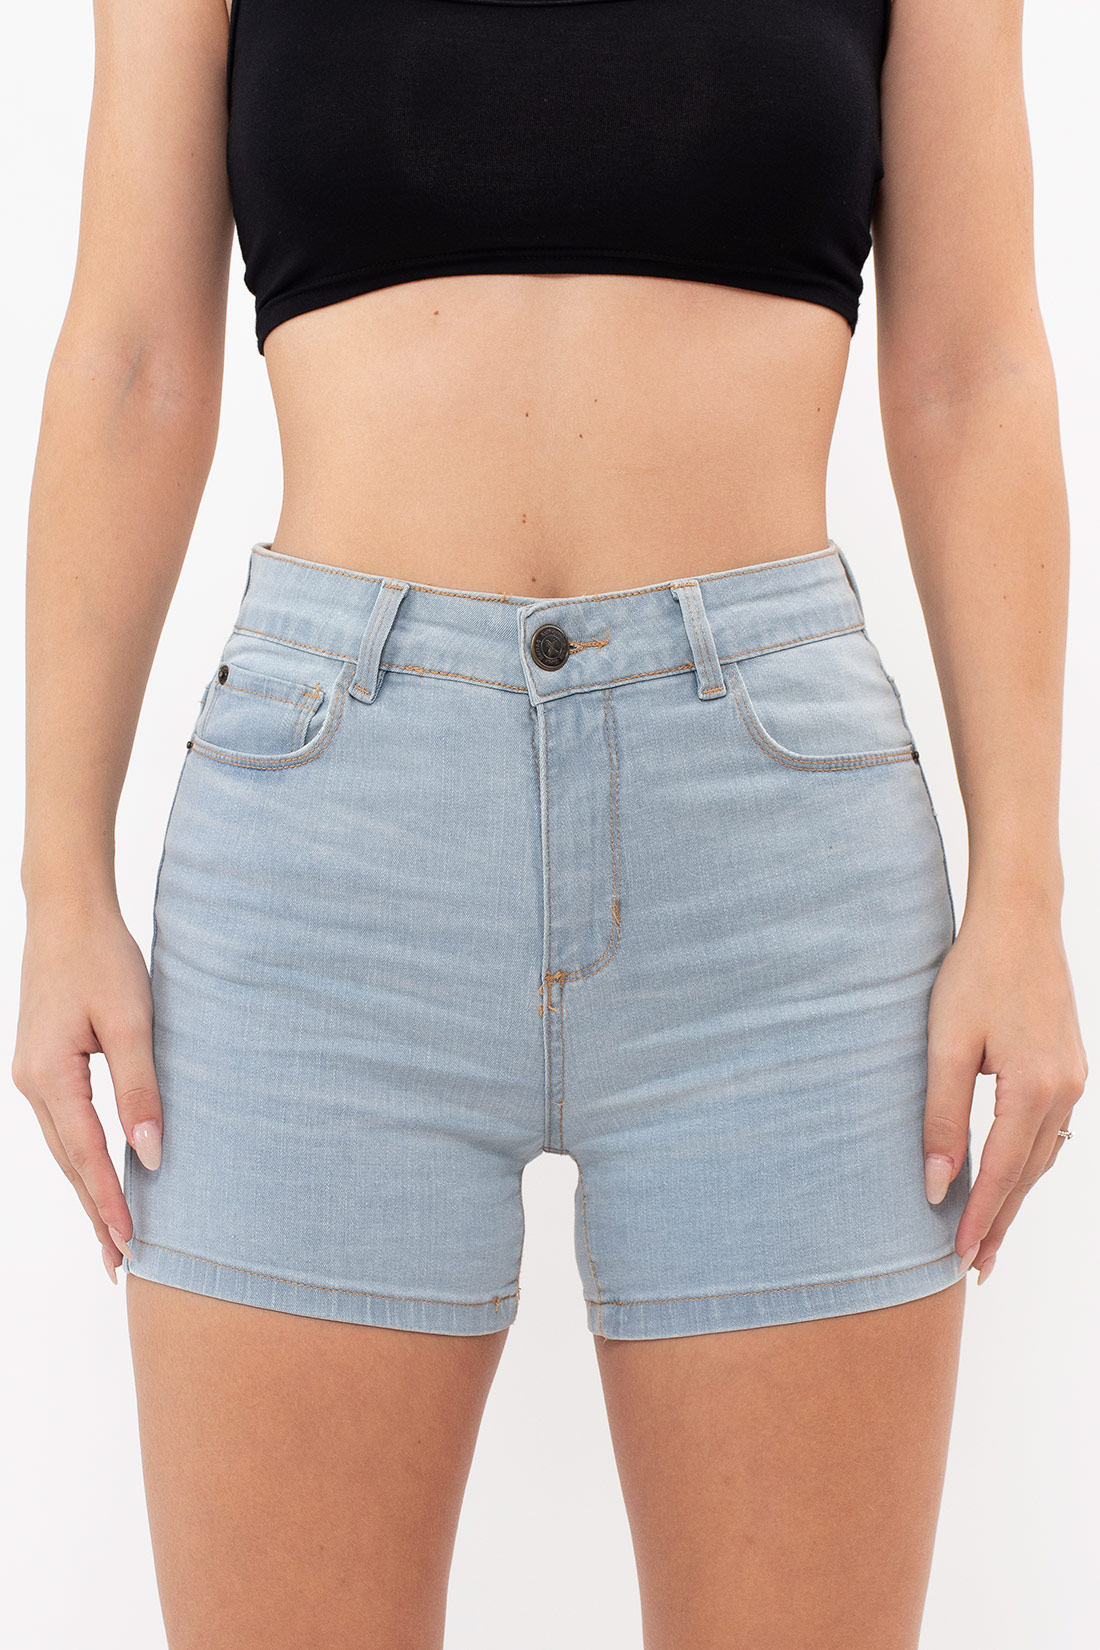 Shorts Jeans Hering Liso